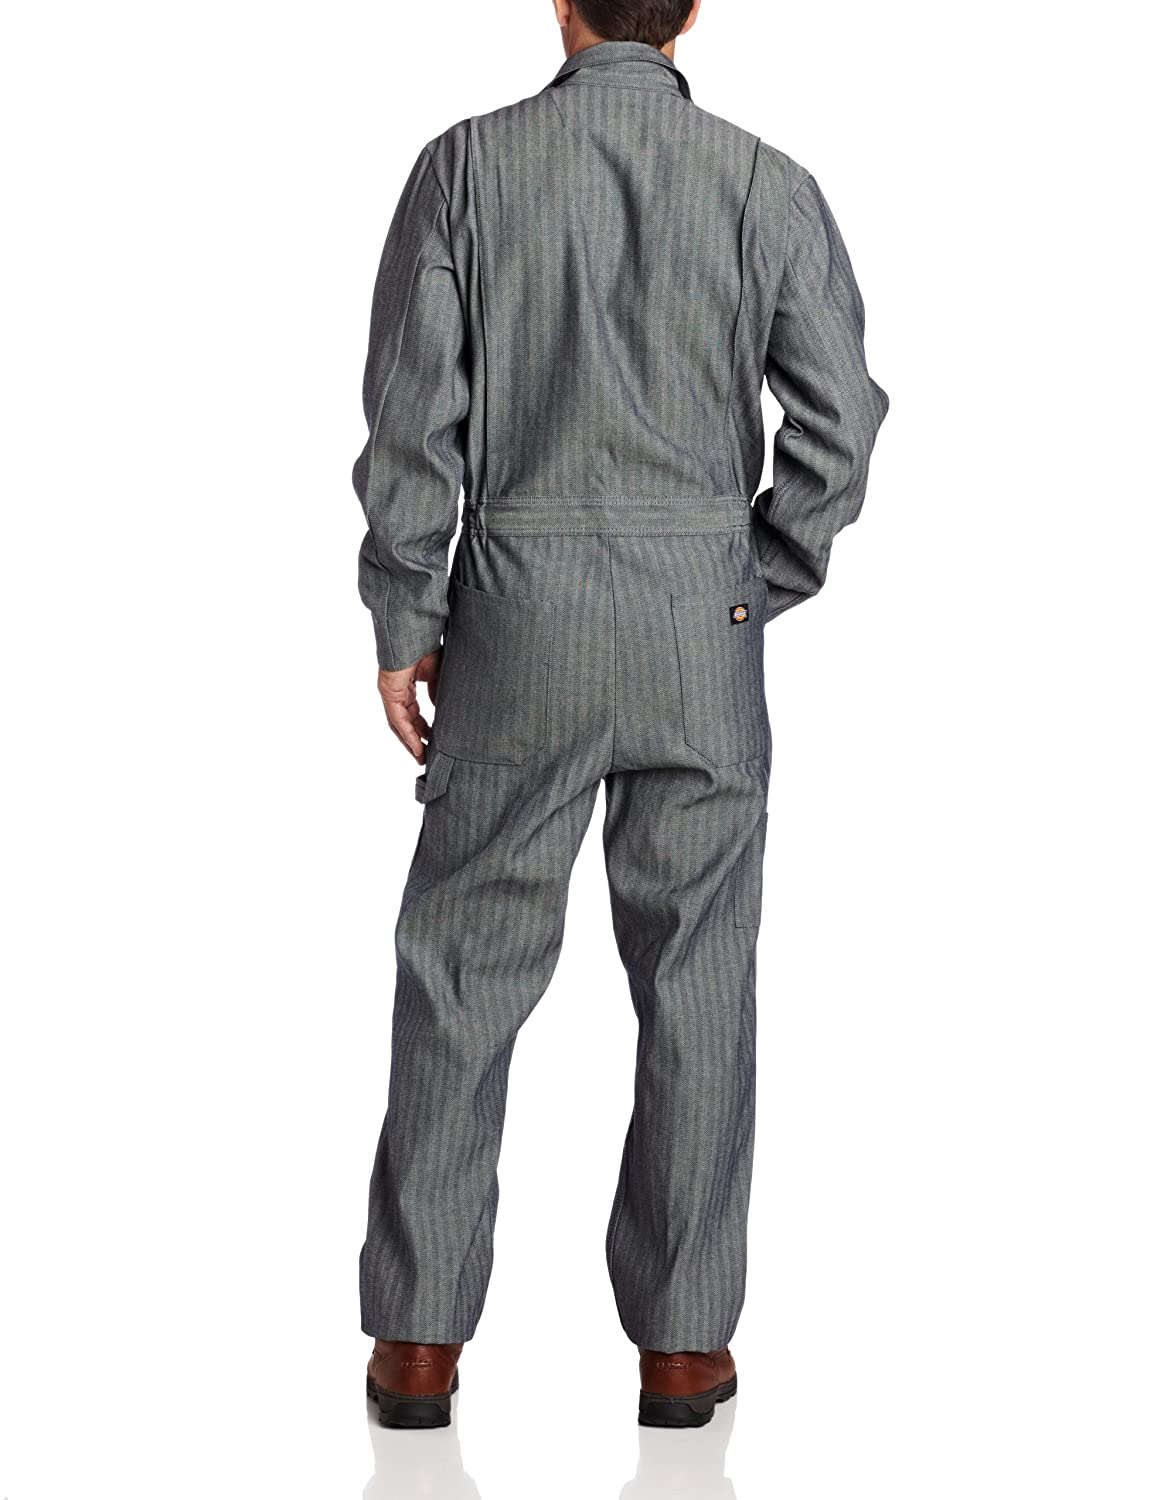 Amazon.com: Dickies Mens Long Sleeve Cotton Coverall: Overalls And Coveralls Workwear Apparel: Clothing